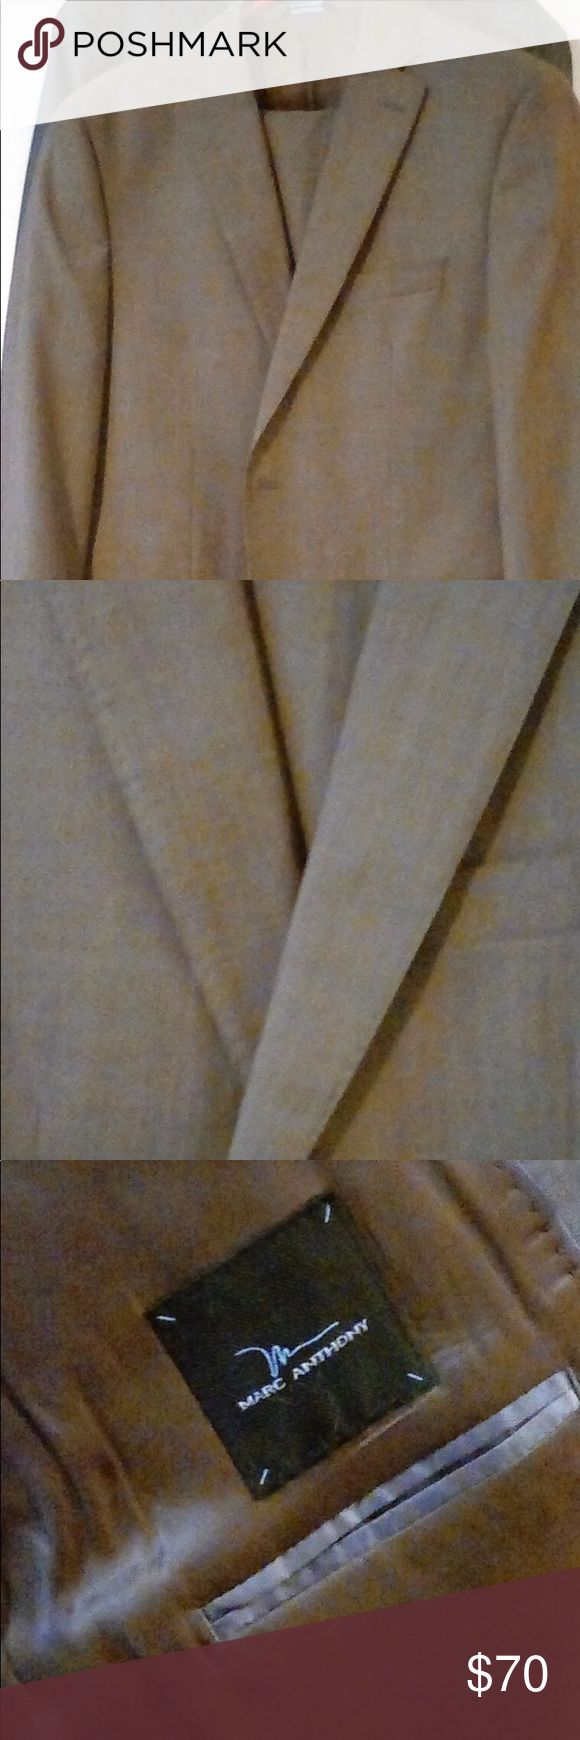 Men's brown suit Marc Anthony brown suit. Coat and pants. Pants 34x34 , coat size 42 regular. Great condition. Tan/brown color. Accepting offers Marc Anthony Suits & Blazers Suits